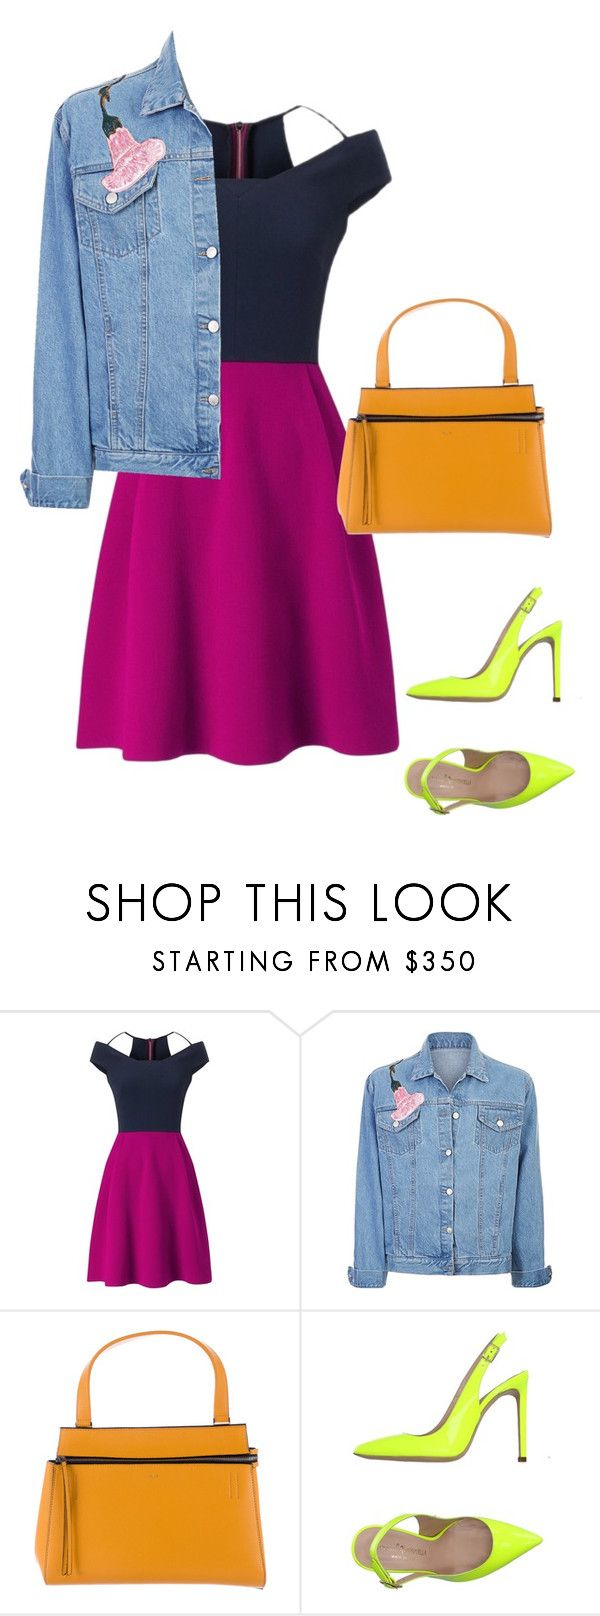 6 by asvetik on Polyvore featuring мода, Roland Mouret, Marco Barbabella and CÉLINE